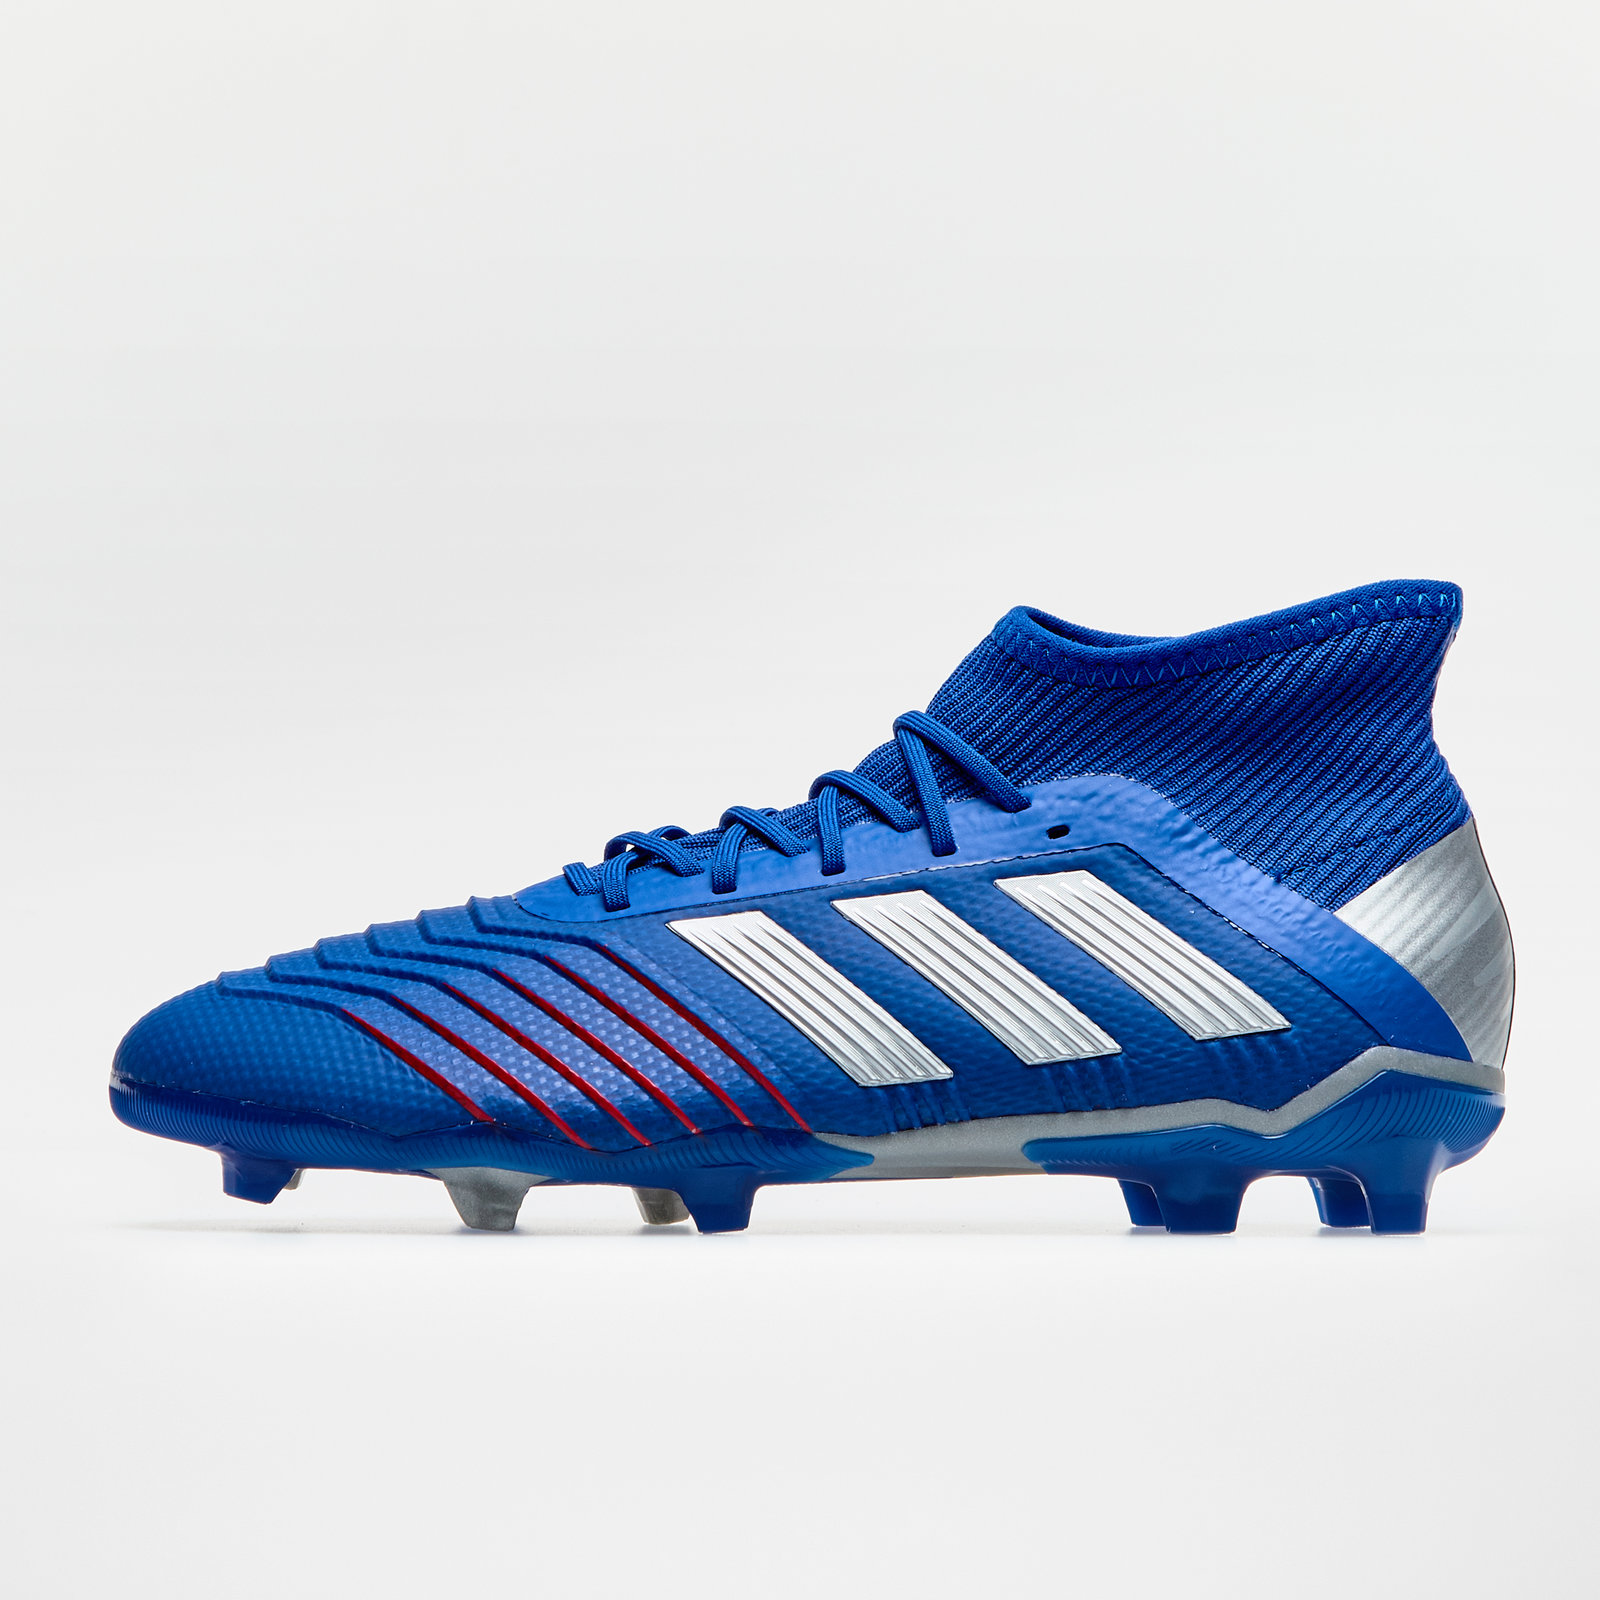 7f7c66680 adidas Predator 19.1 Firm Ground Kids Football Boots Studs Trainers Shoes  Blue